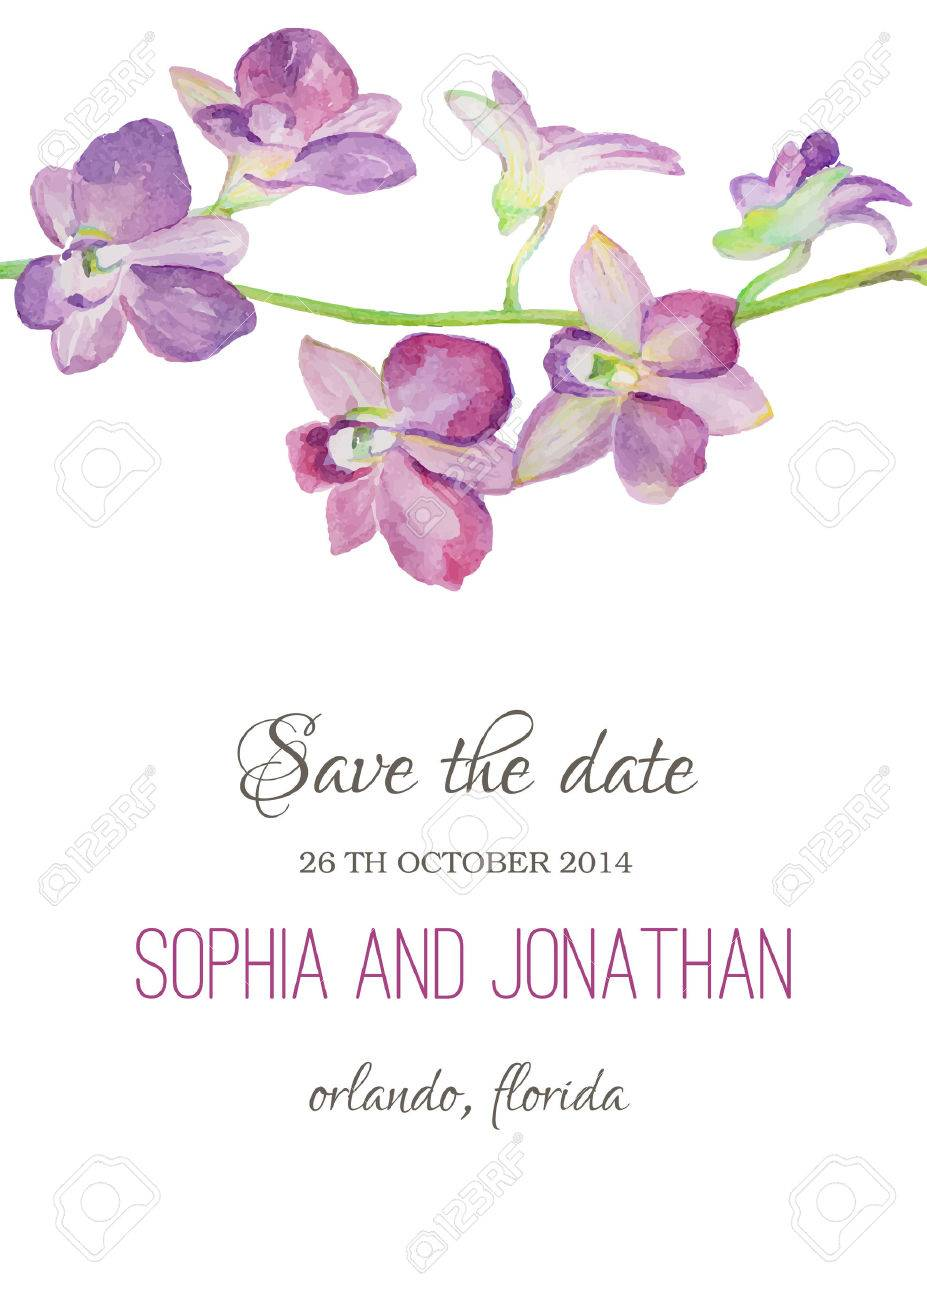 Wedding Invitation Watercolor With Orchid Flowers. Illustration ...